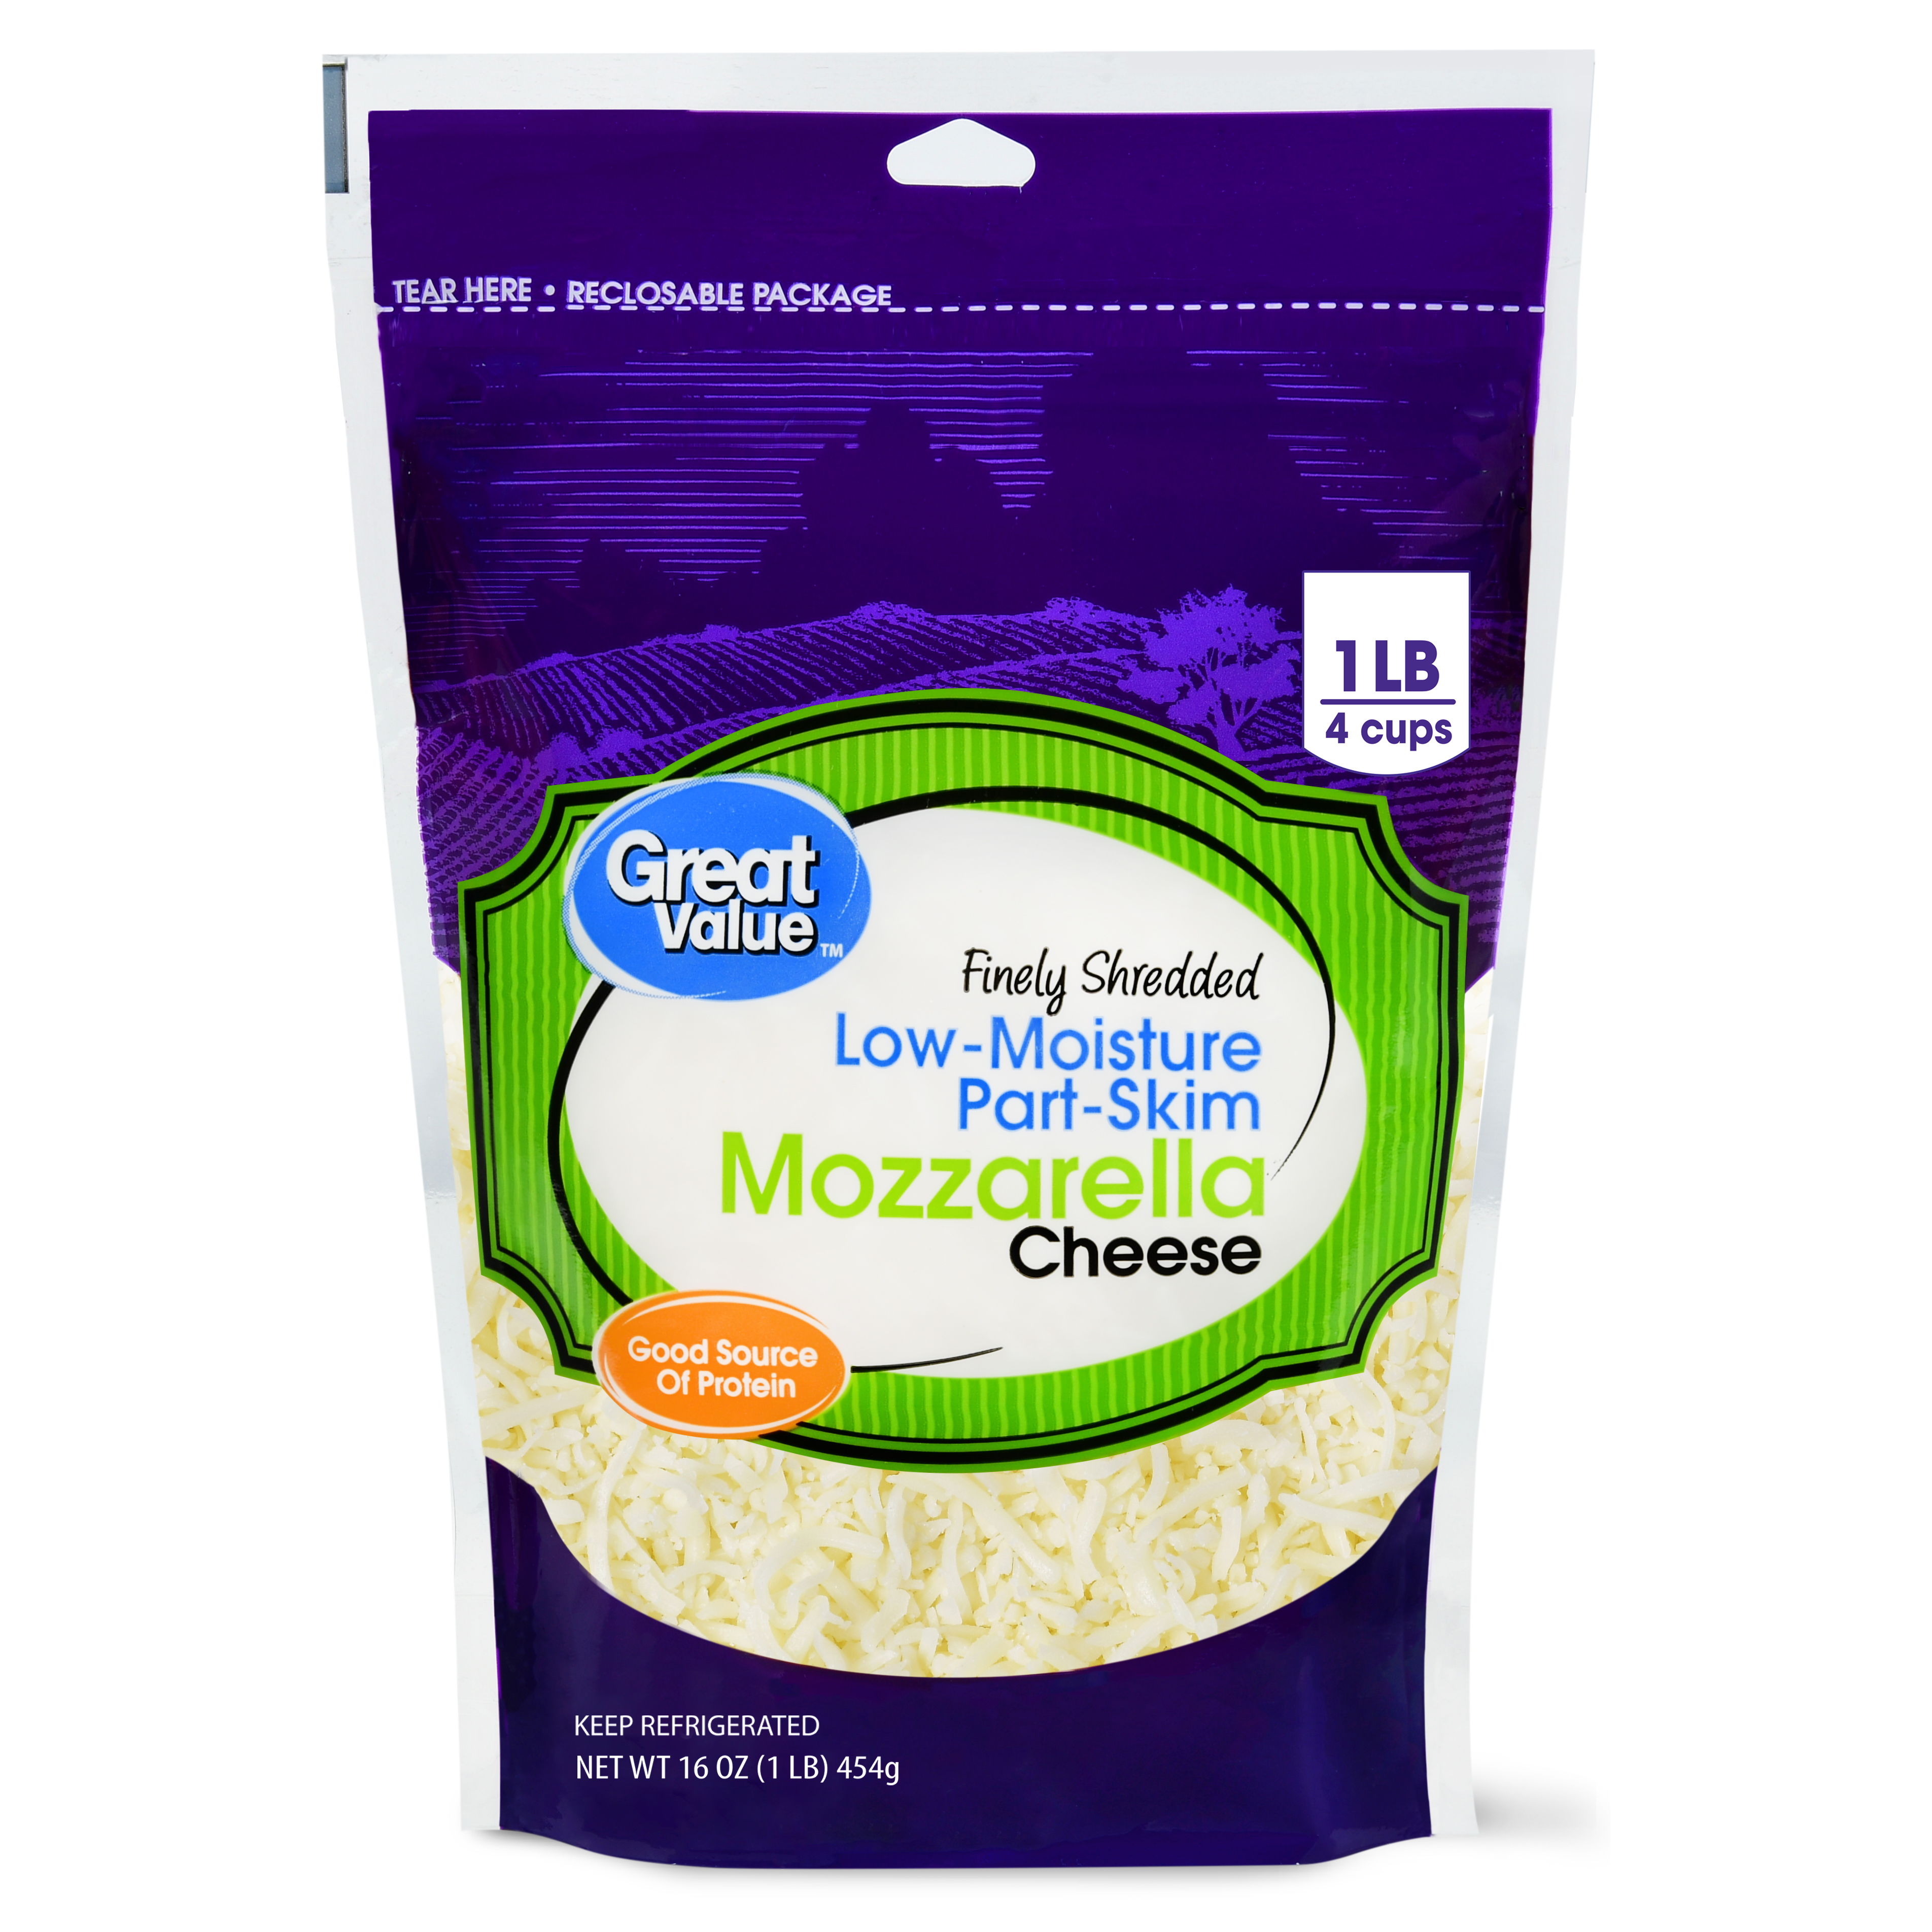 Great Value Finely Shredded Mozzarella Cheese, Low-Moisture Part-Skim, 16 oz